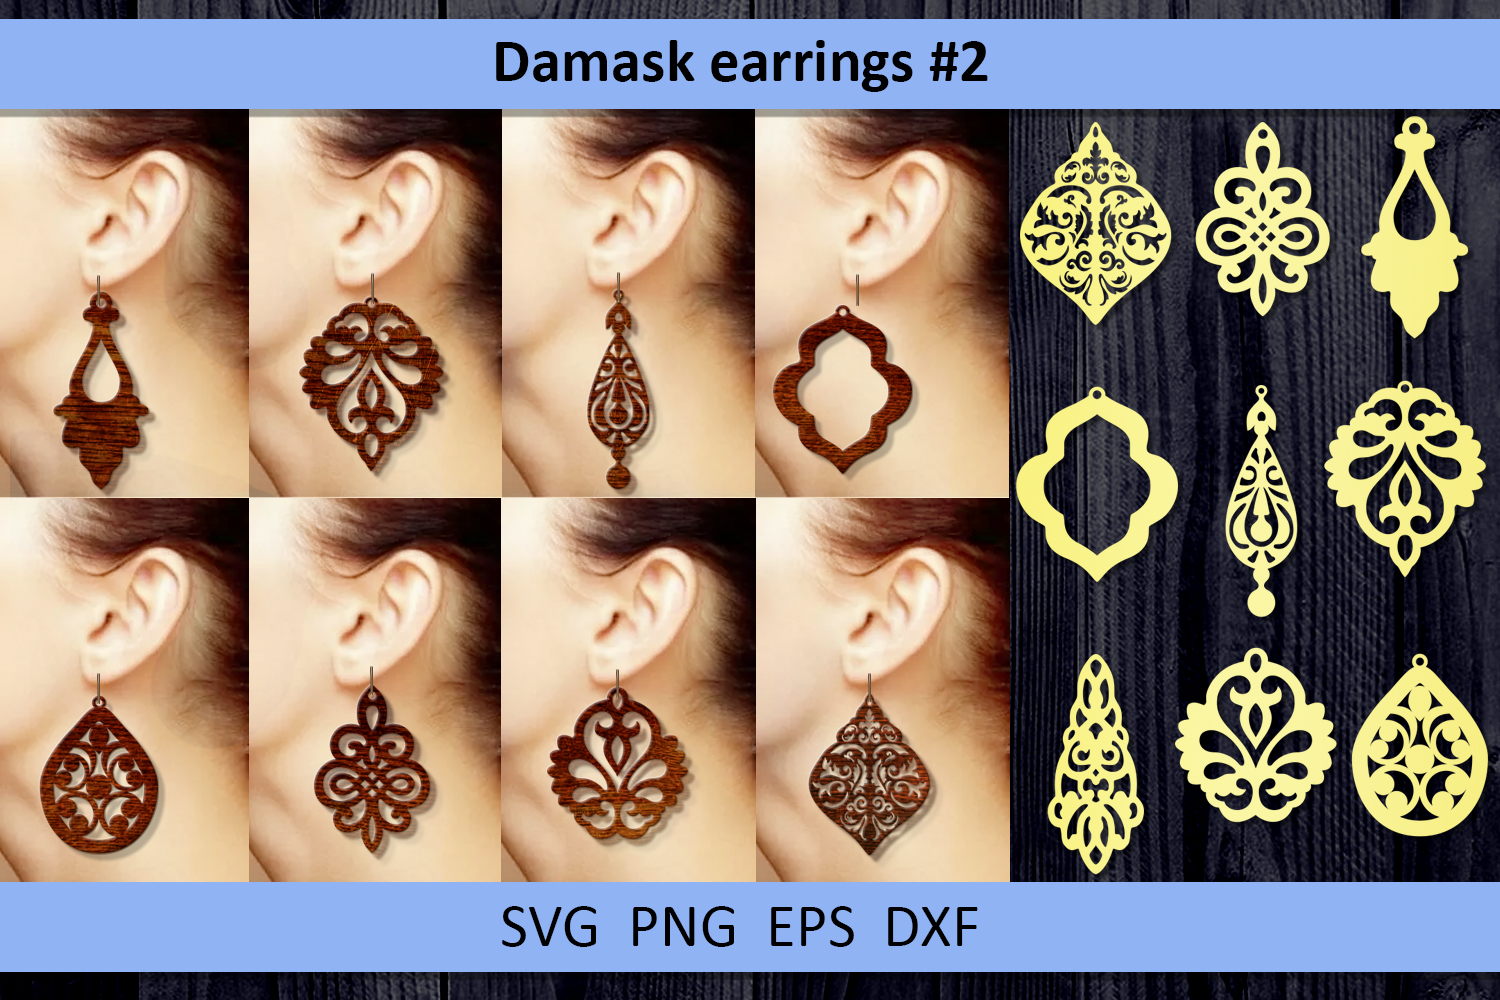 9 Damask earrings svg Leather earrings svg Necklace svg example image 1